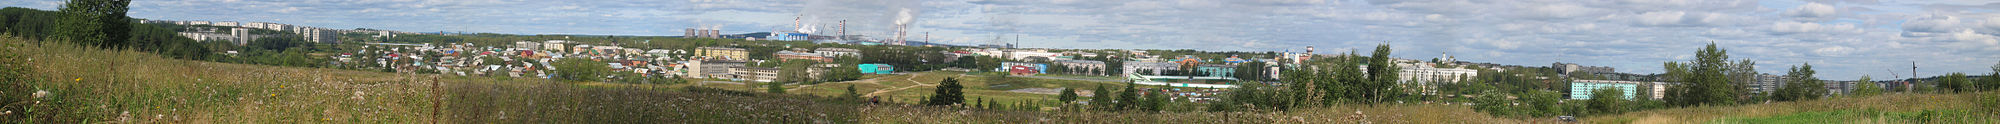 Panorama view of Krasnoturinsk.jpg